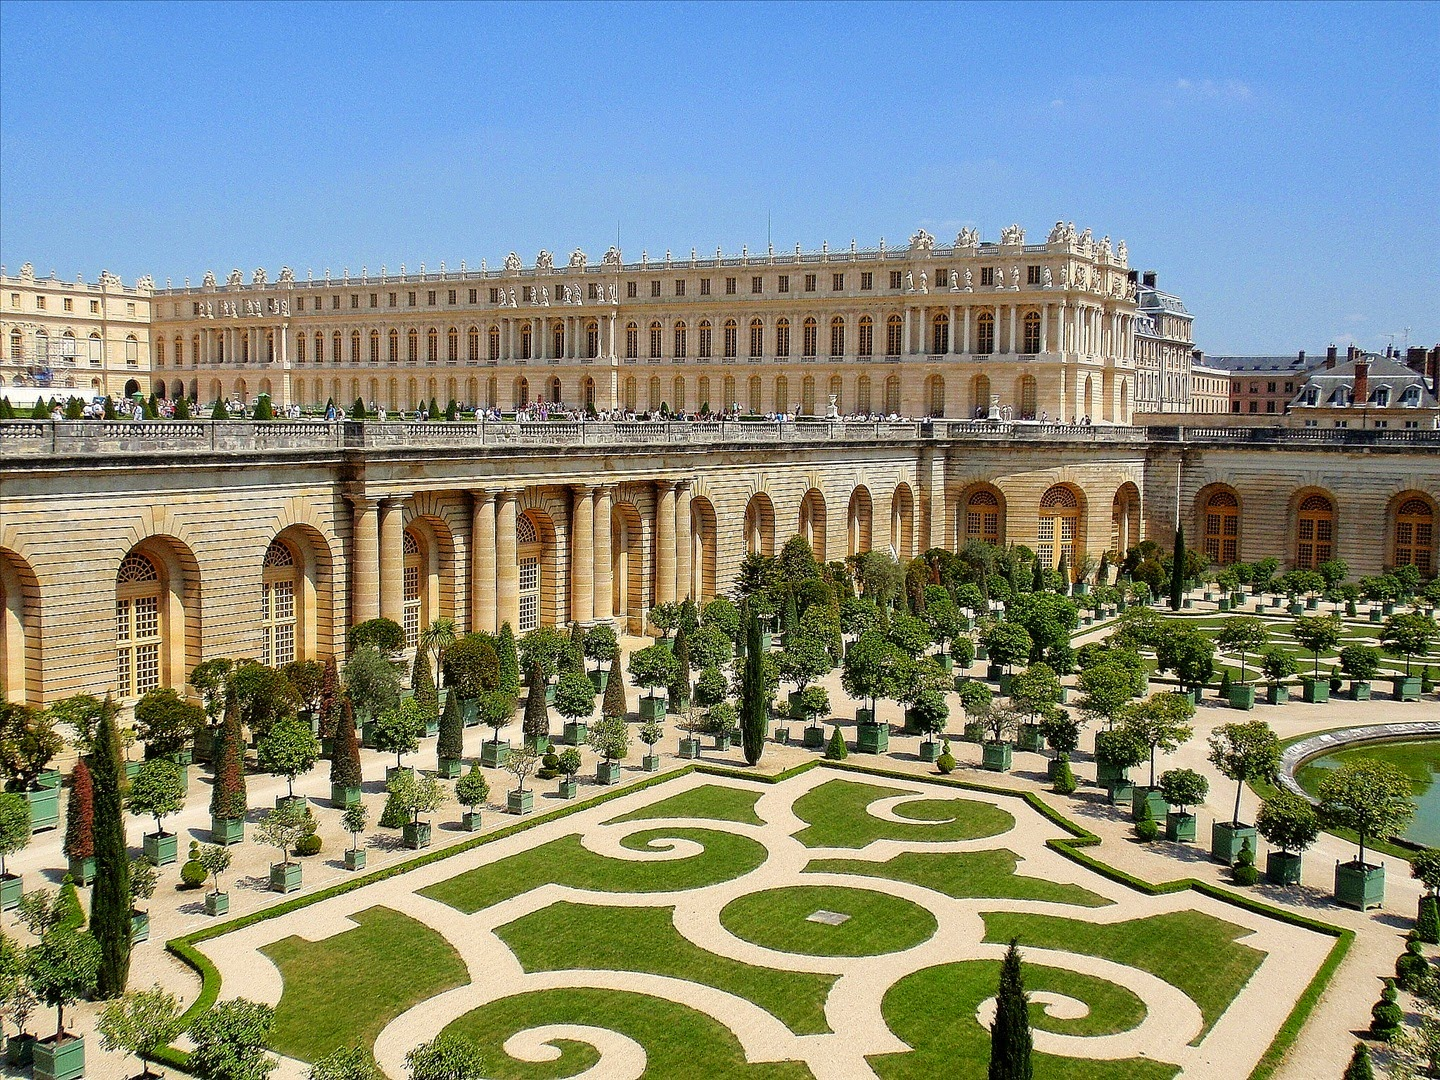 Palace of Versailles: Hours, Address, Palace of Versailles Reviews: 4/5